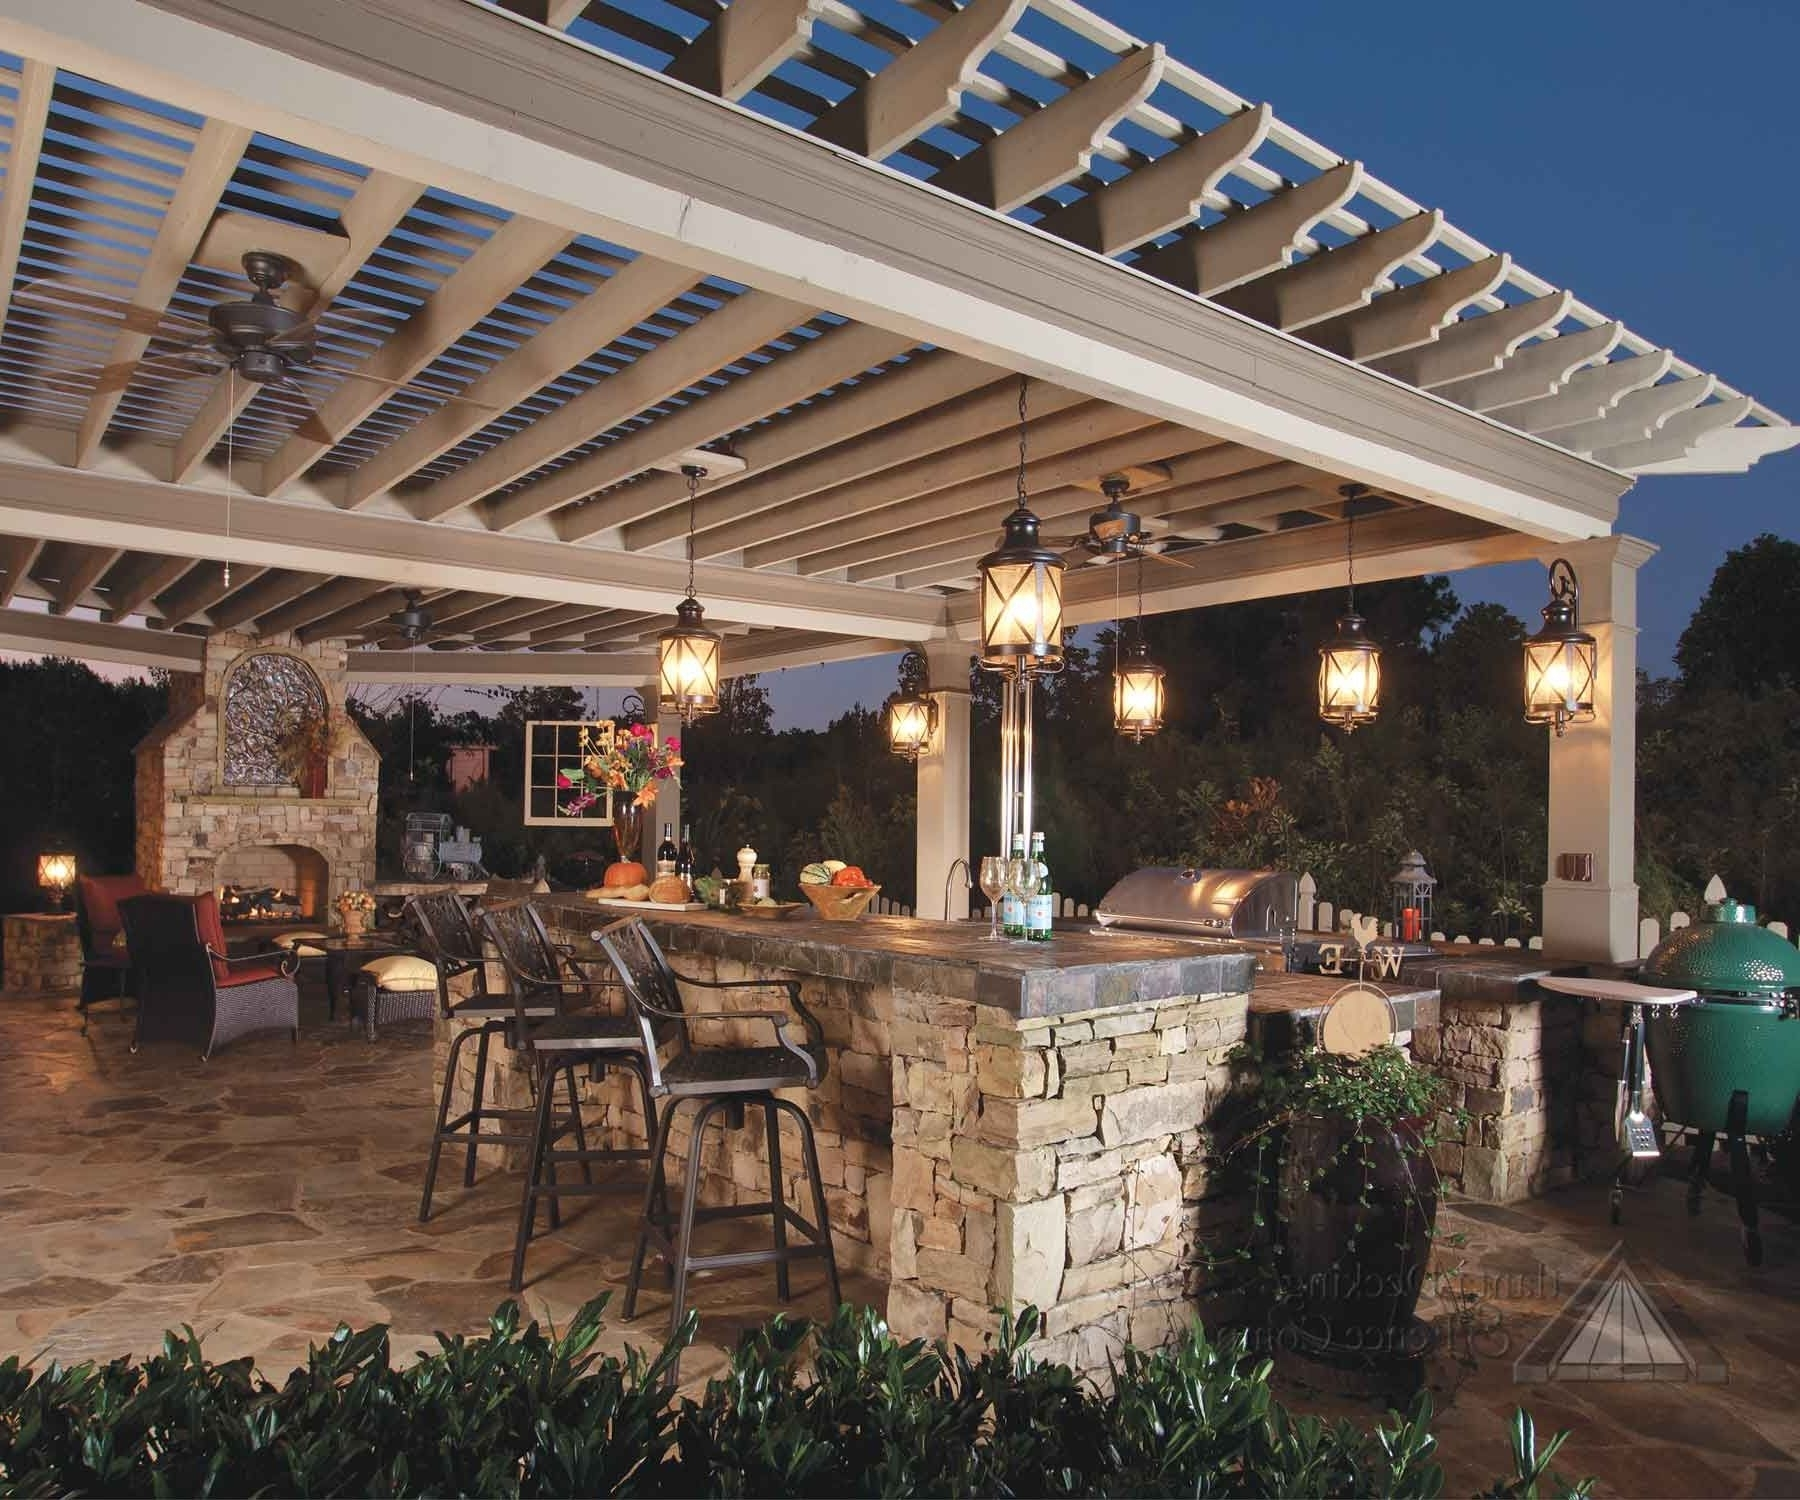 Gorgeous Outdoor Kitchen Lighting Fixtures On House Design Ideas Intended For Outdoor Hanging Lights From Australia (View 5 of 15)